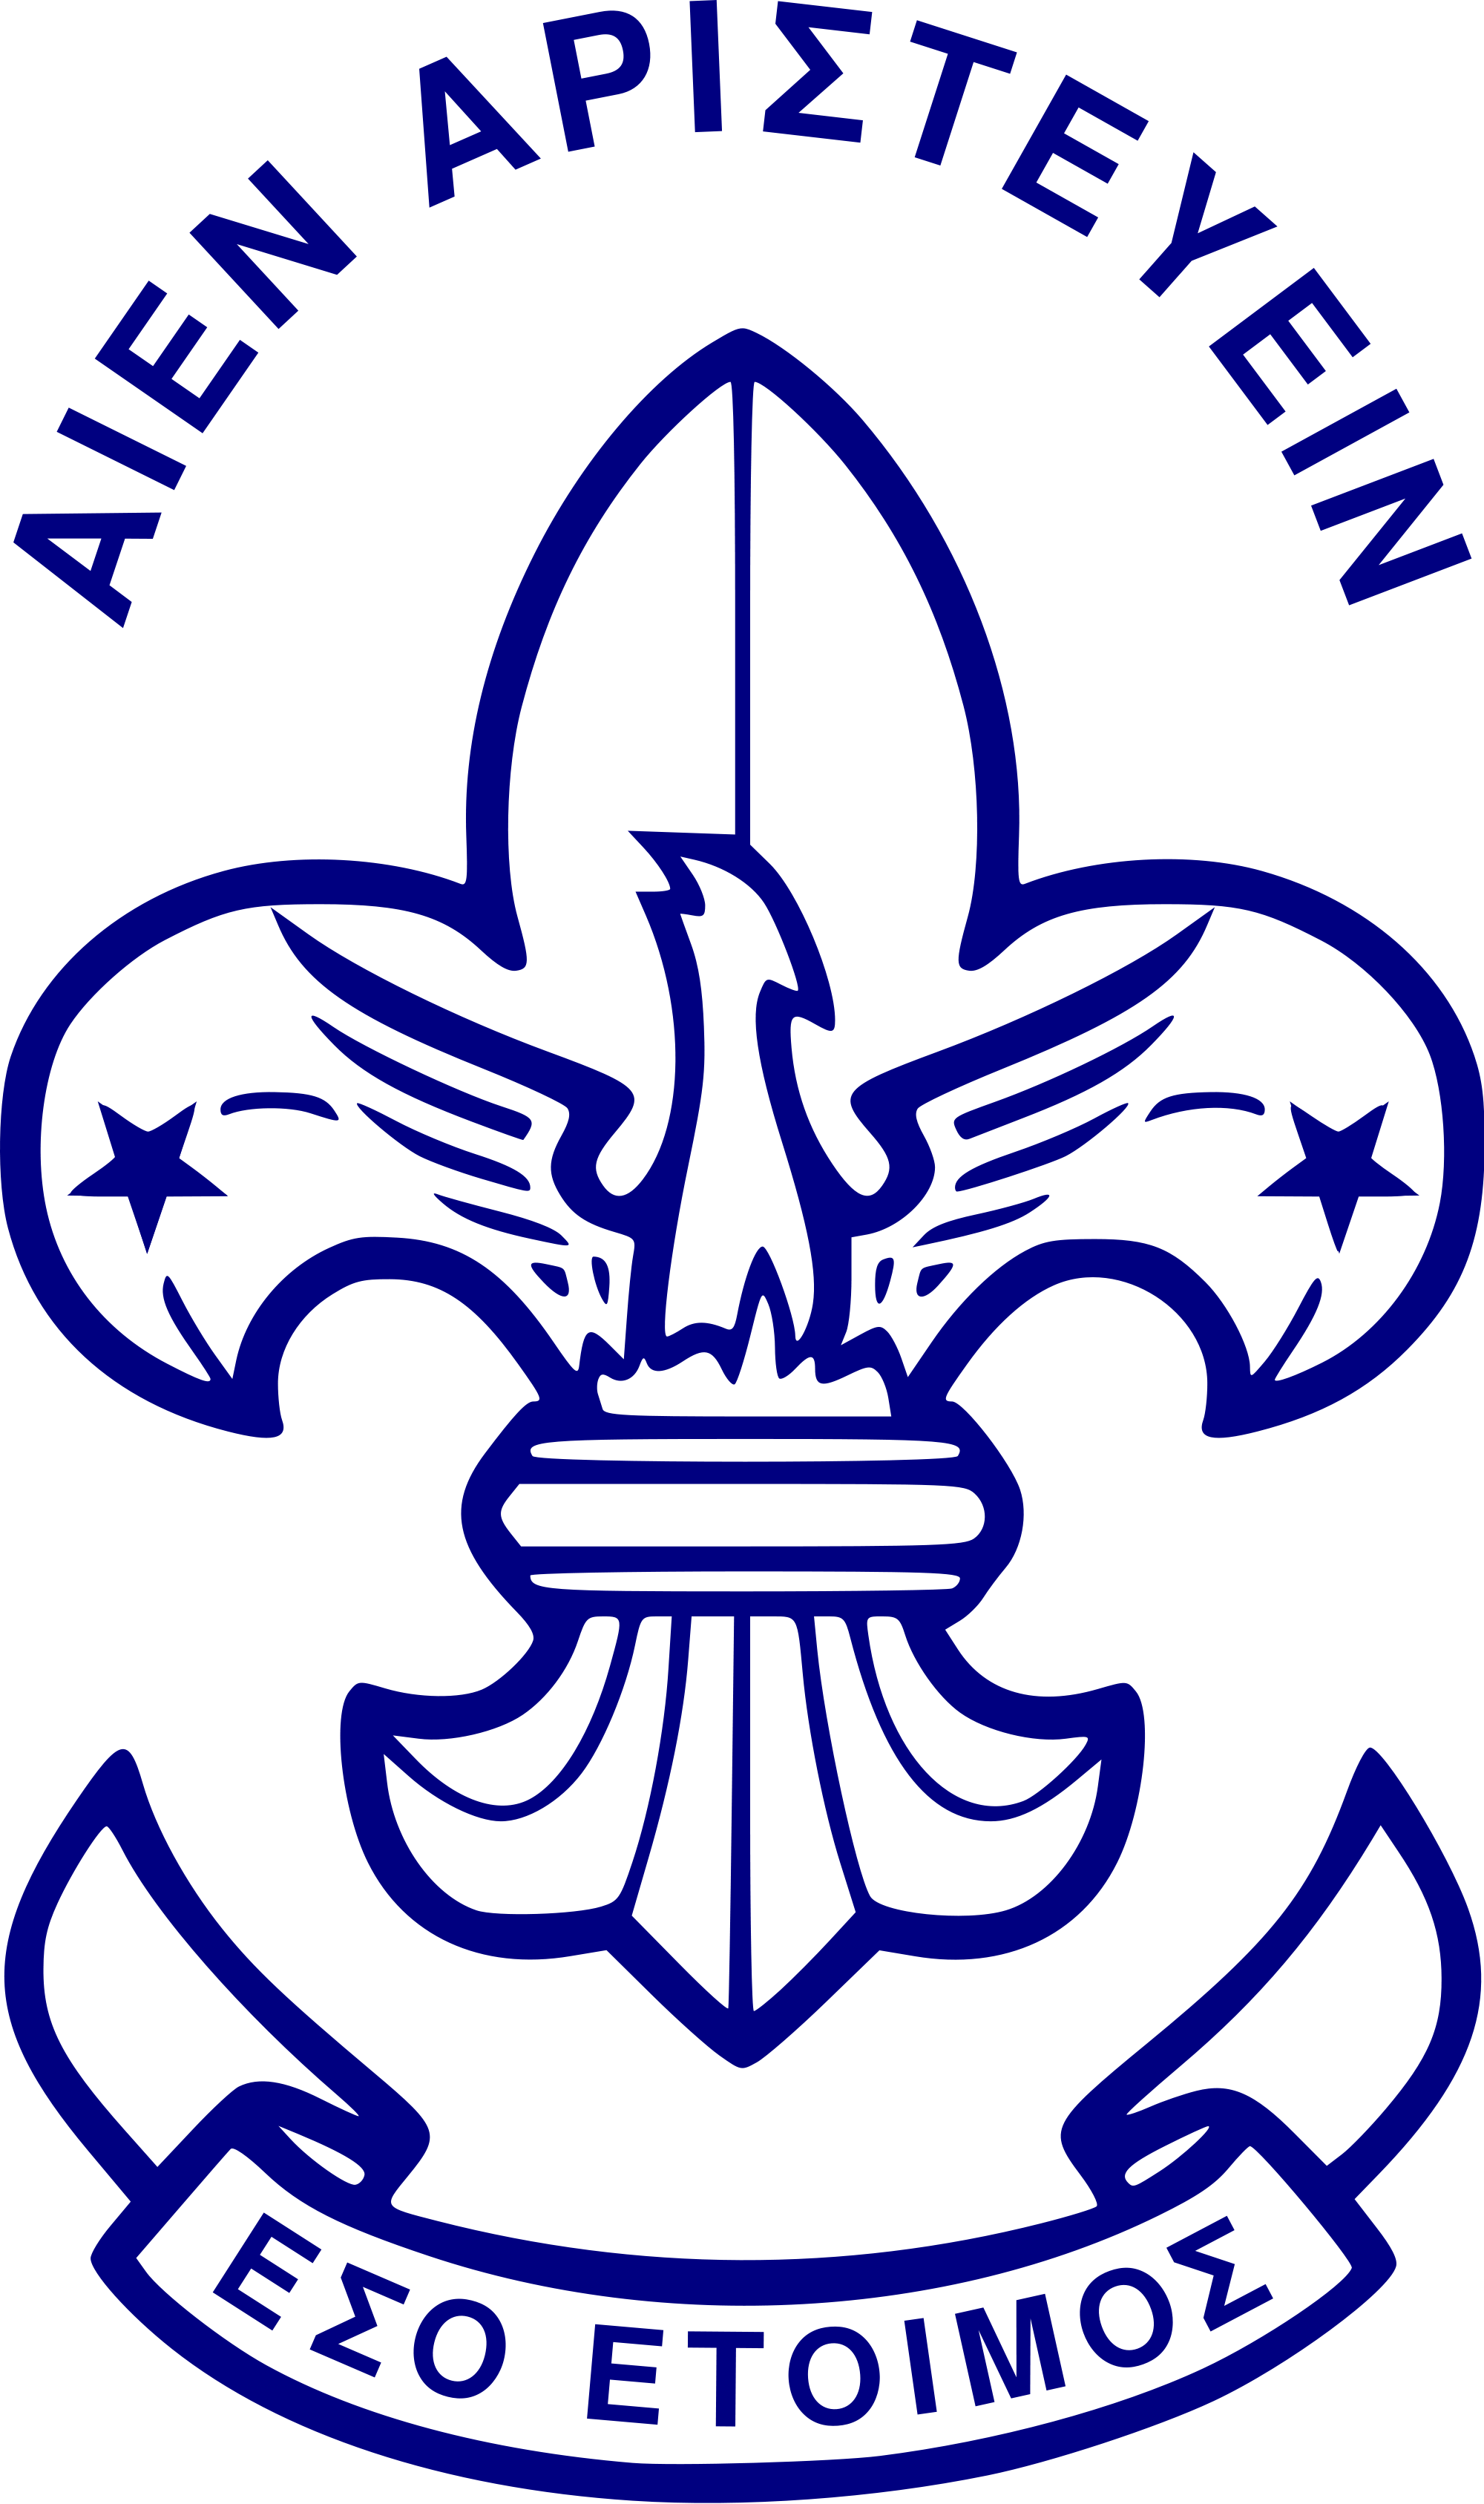 Scouts of greece logos. Knot clipart scouting activity